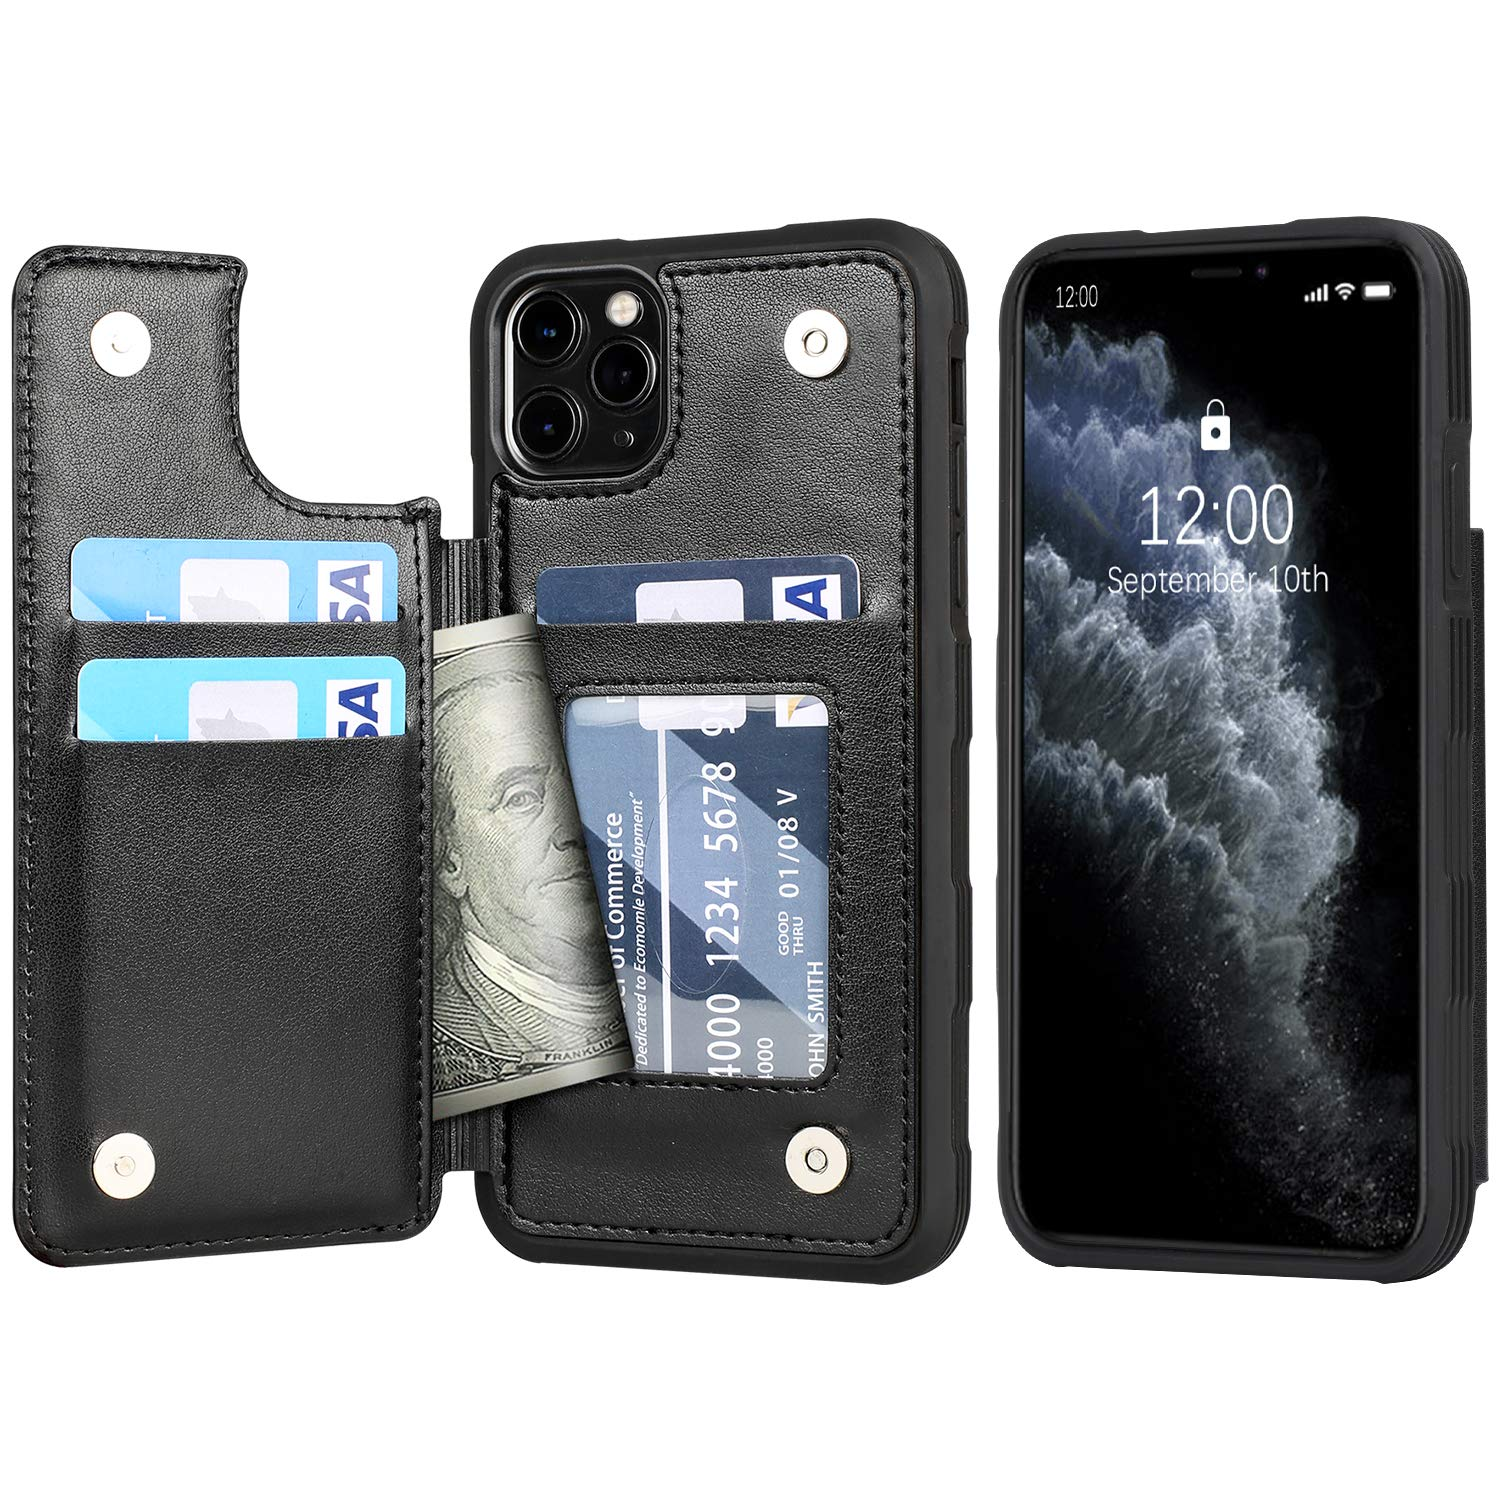 Arae Case for iPhone 11 pro max PU Leather Wallet Case with Card Pockets Back Flip Cover for iPhone 11 pro max 2019 6.5 inch (Black)